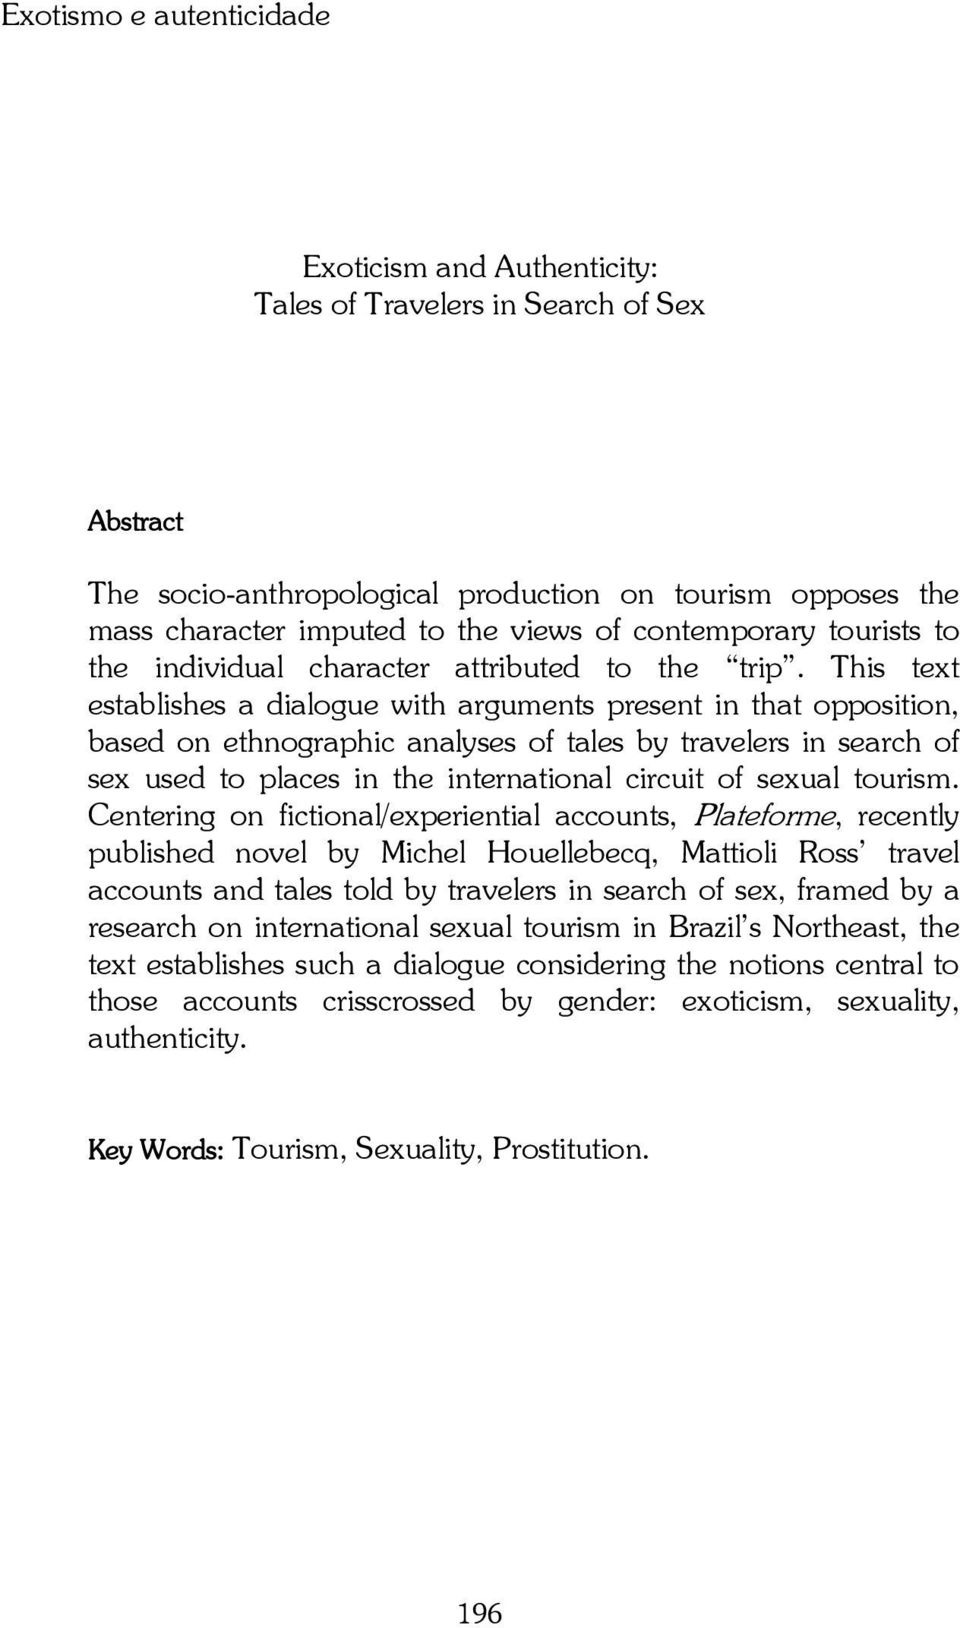 This text establishes a dialogue with arguments present in that opposition, based on ethnographic analyses of tales by travelers in search of sex used to places in the international circuit of sexual